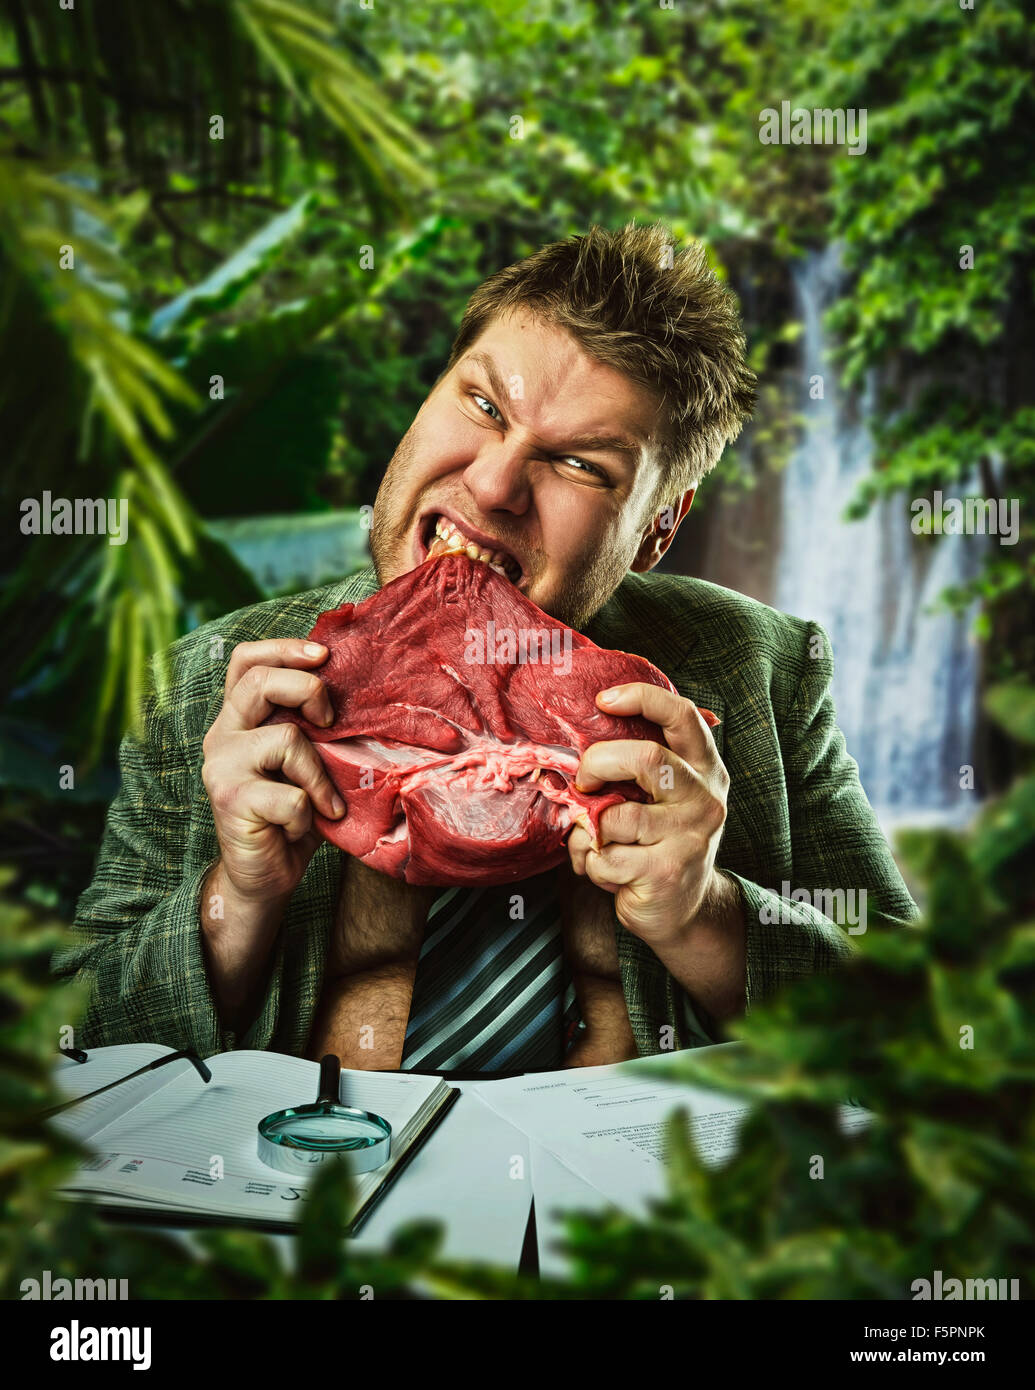 Hungry man is eating red fresh meat - Stock Image